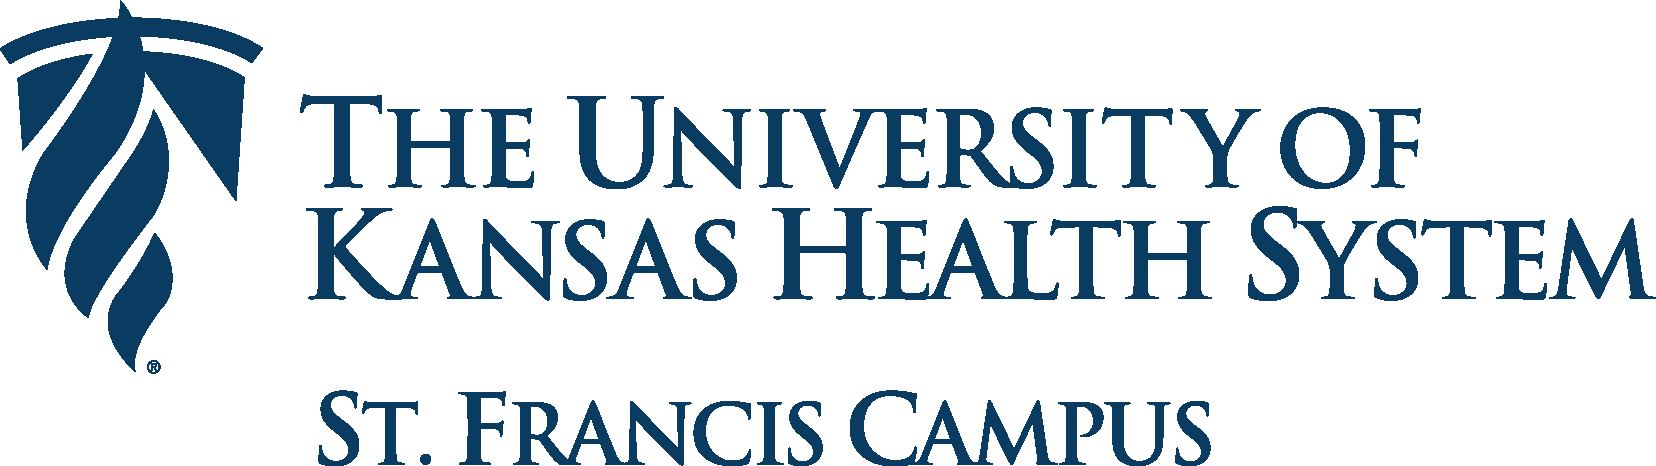 KU Health Systems Logo